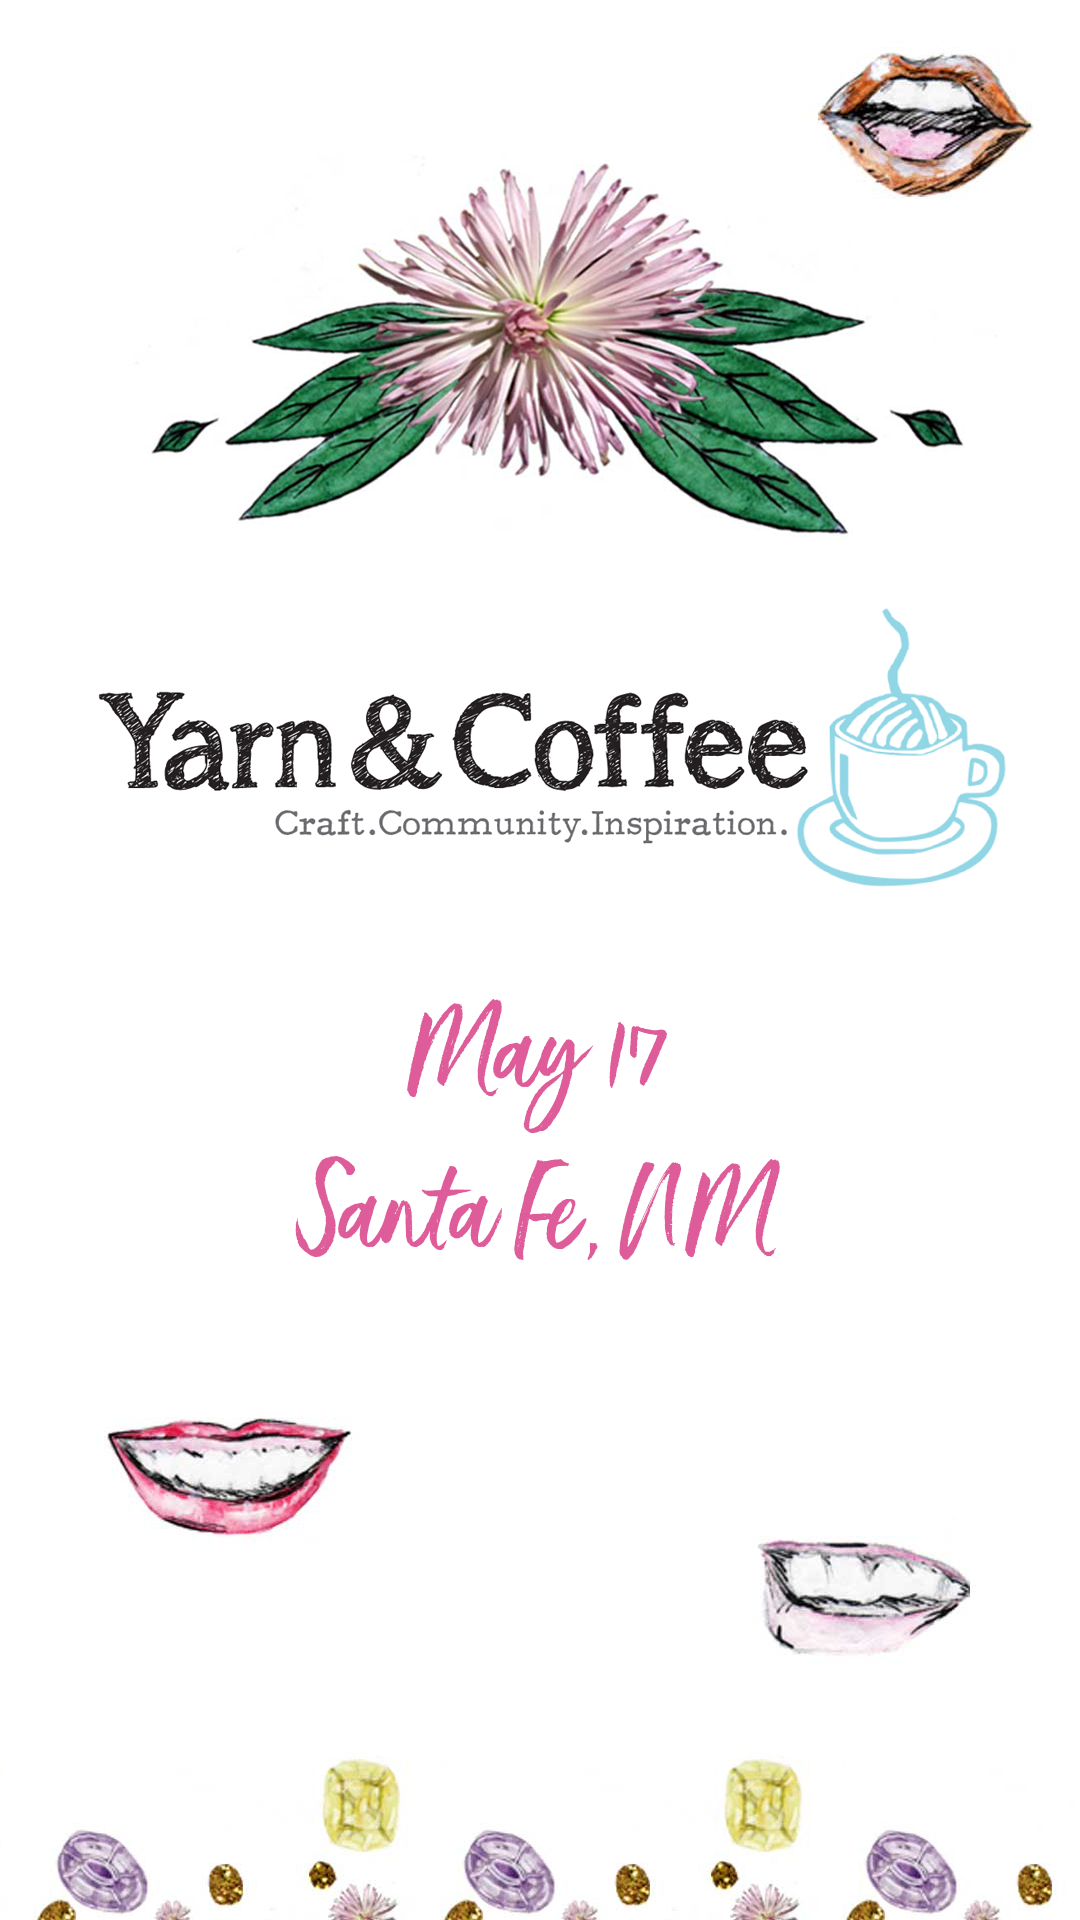 Book Signing at Yarn & Coffee Sante Fe, NM